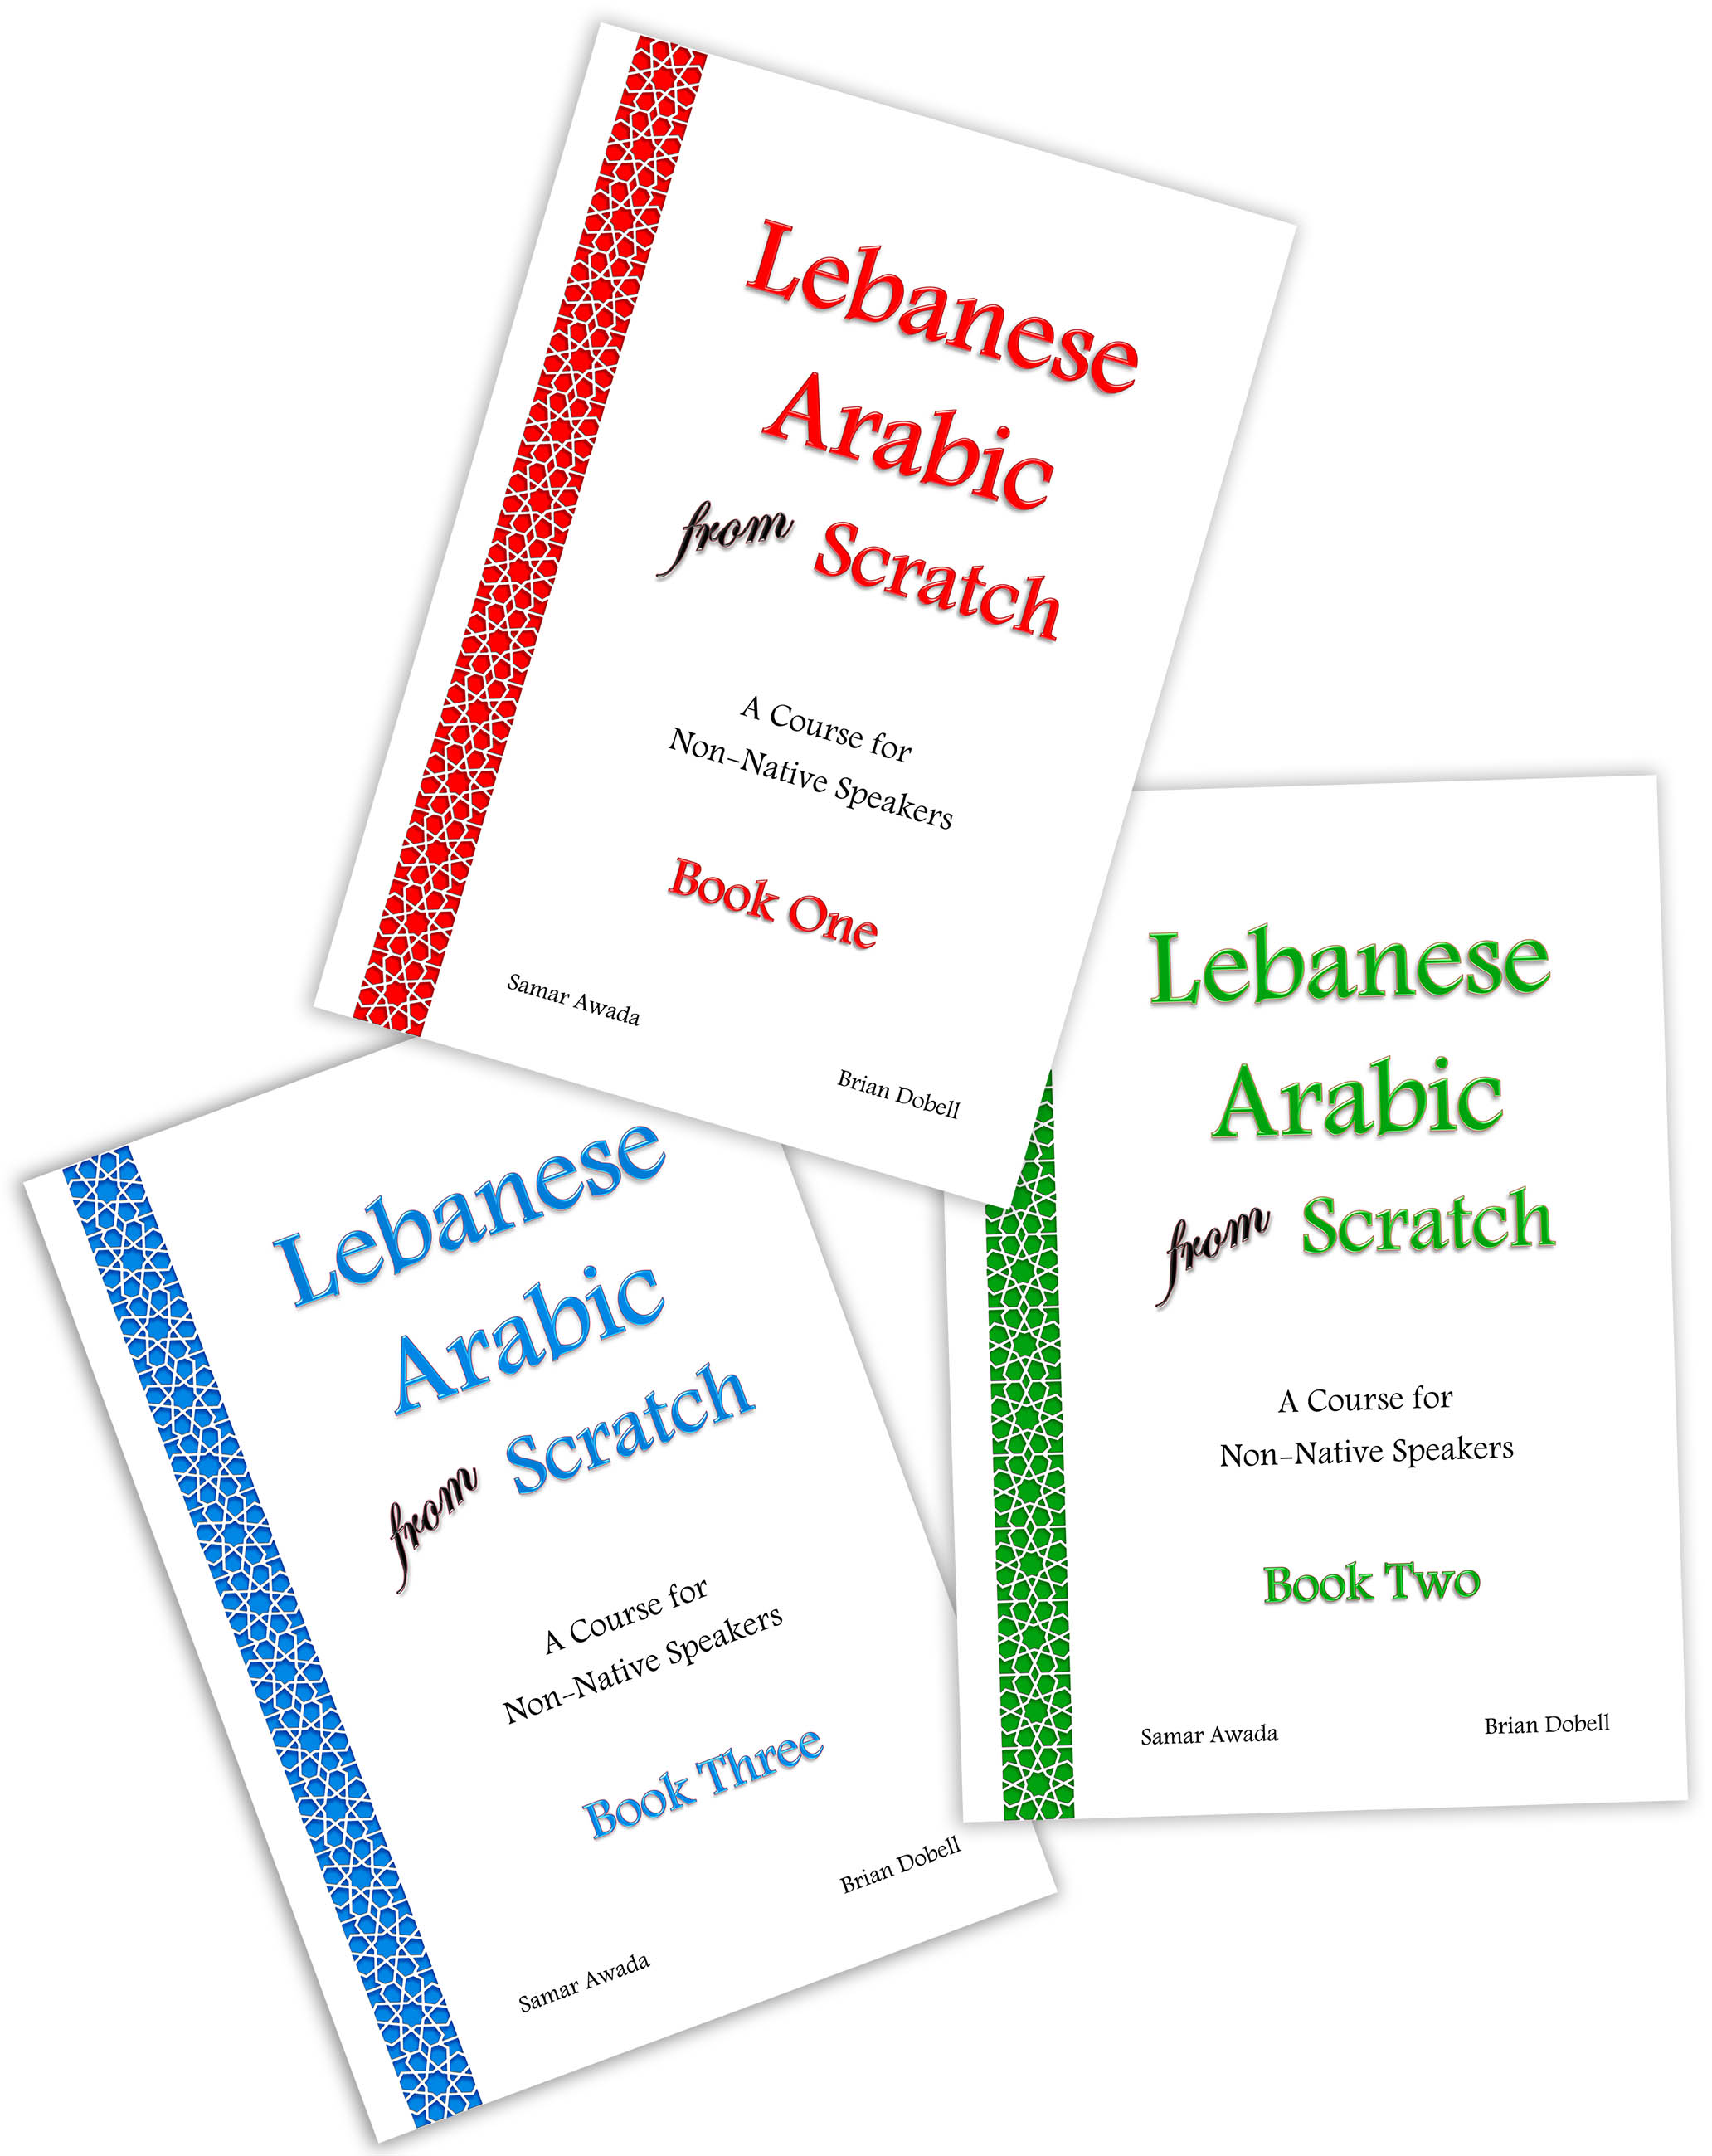 Books 1, 2 and 3 of Lebanese Arabic from Scratch